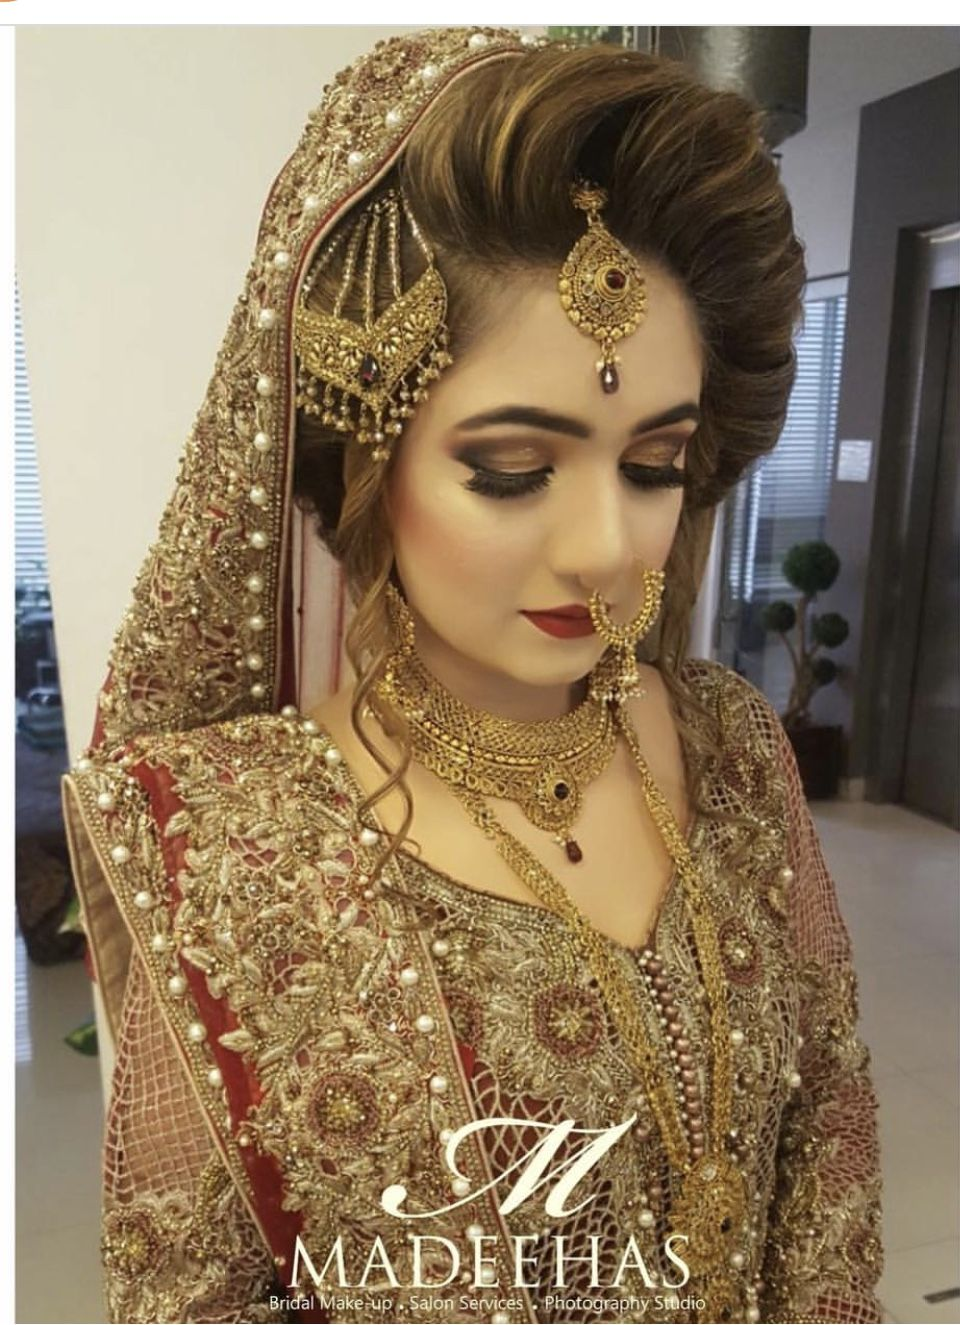 hairstyles | barat | pakistani bridal hairstyles, pakistani